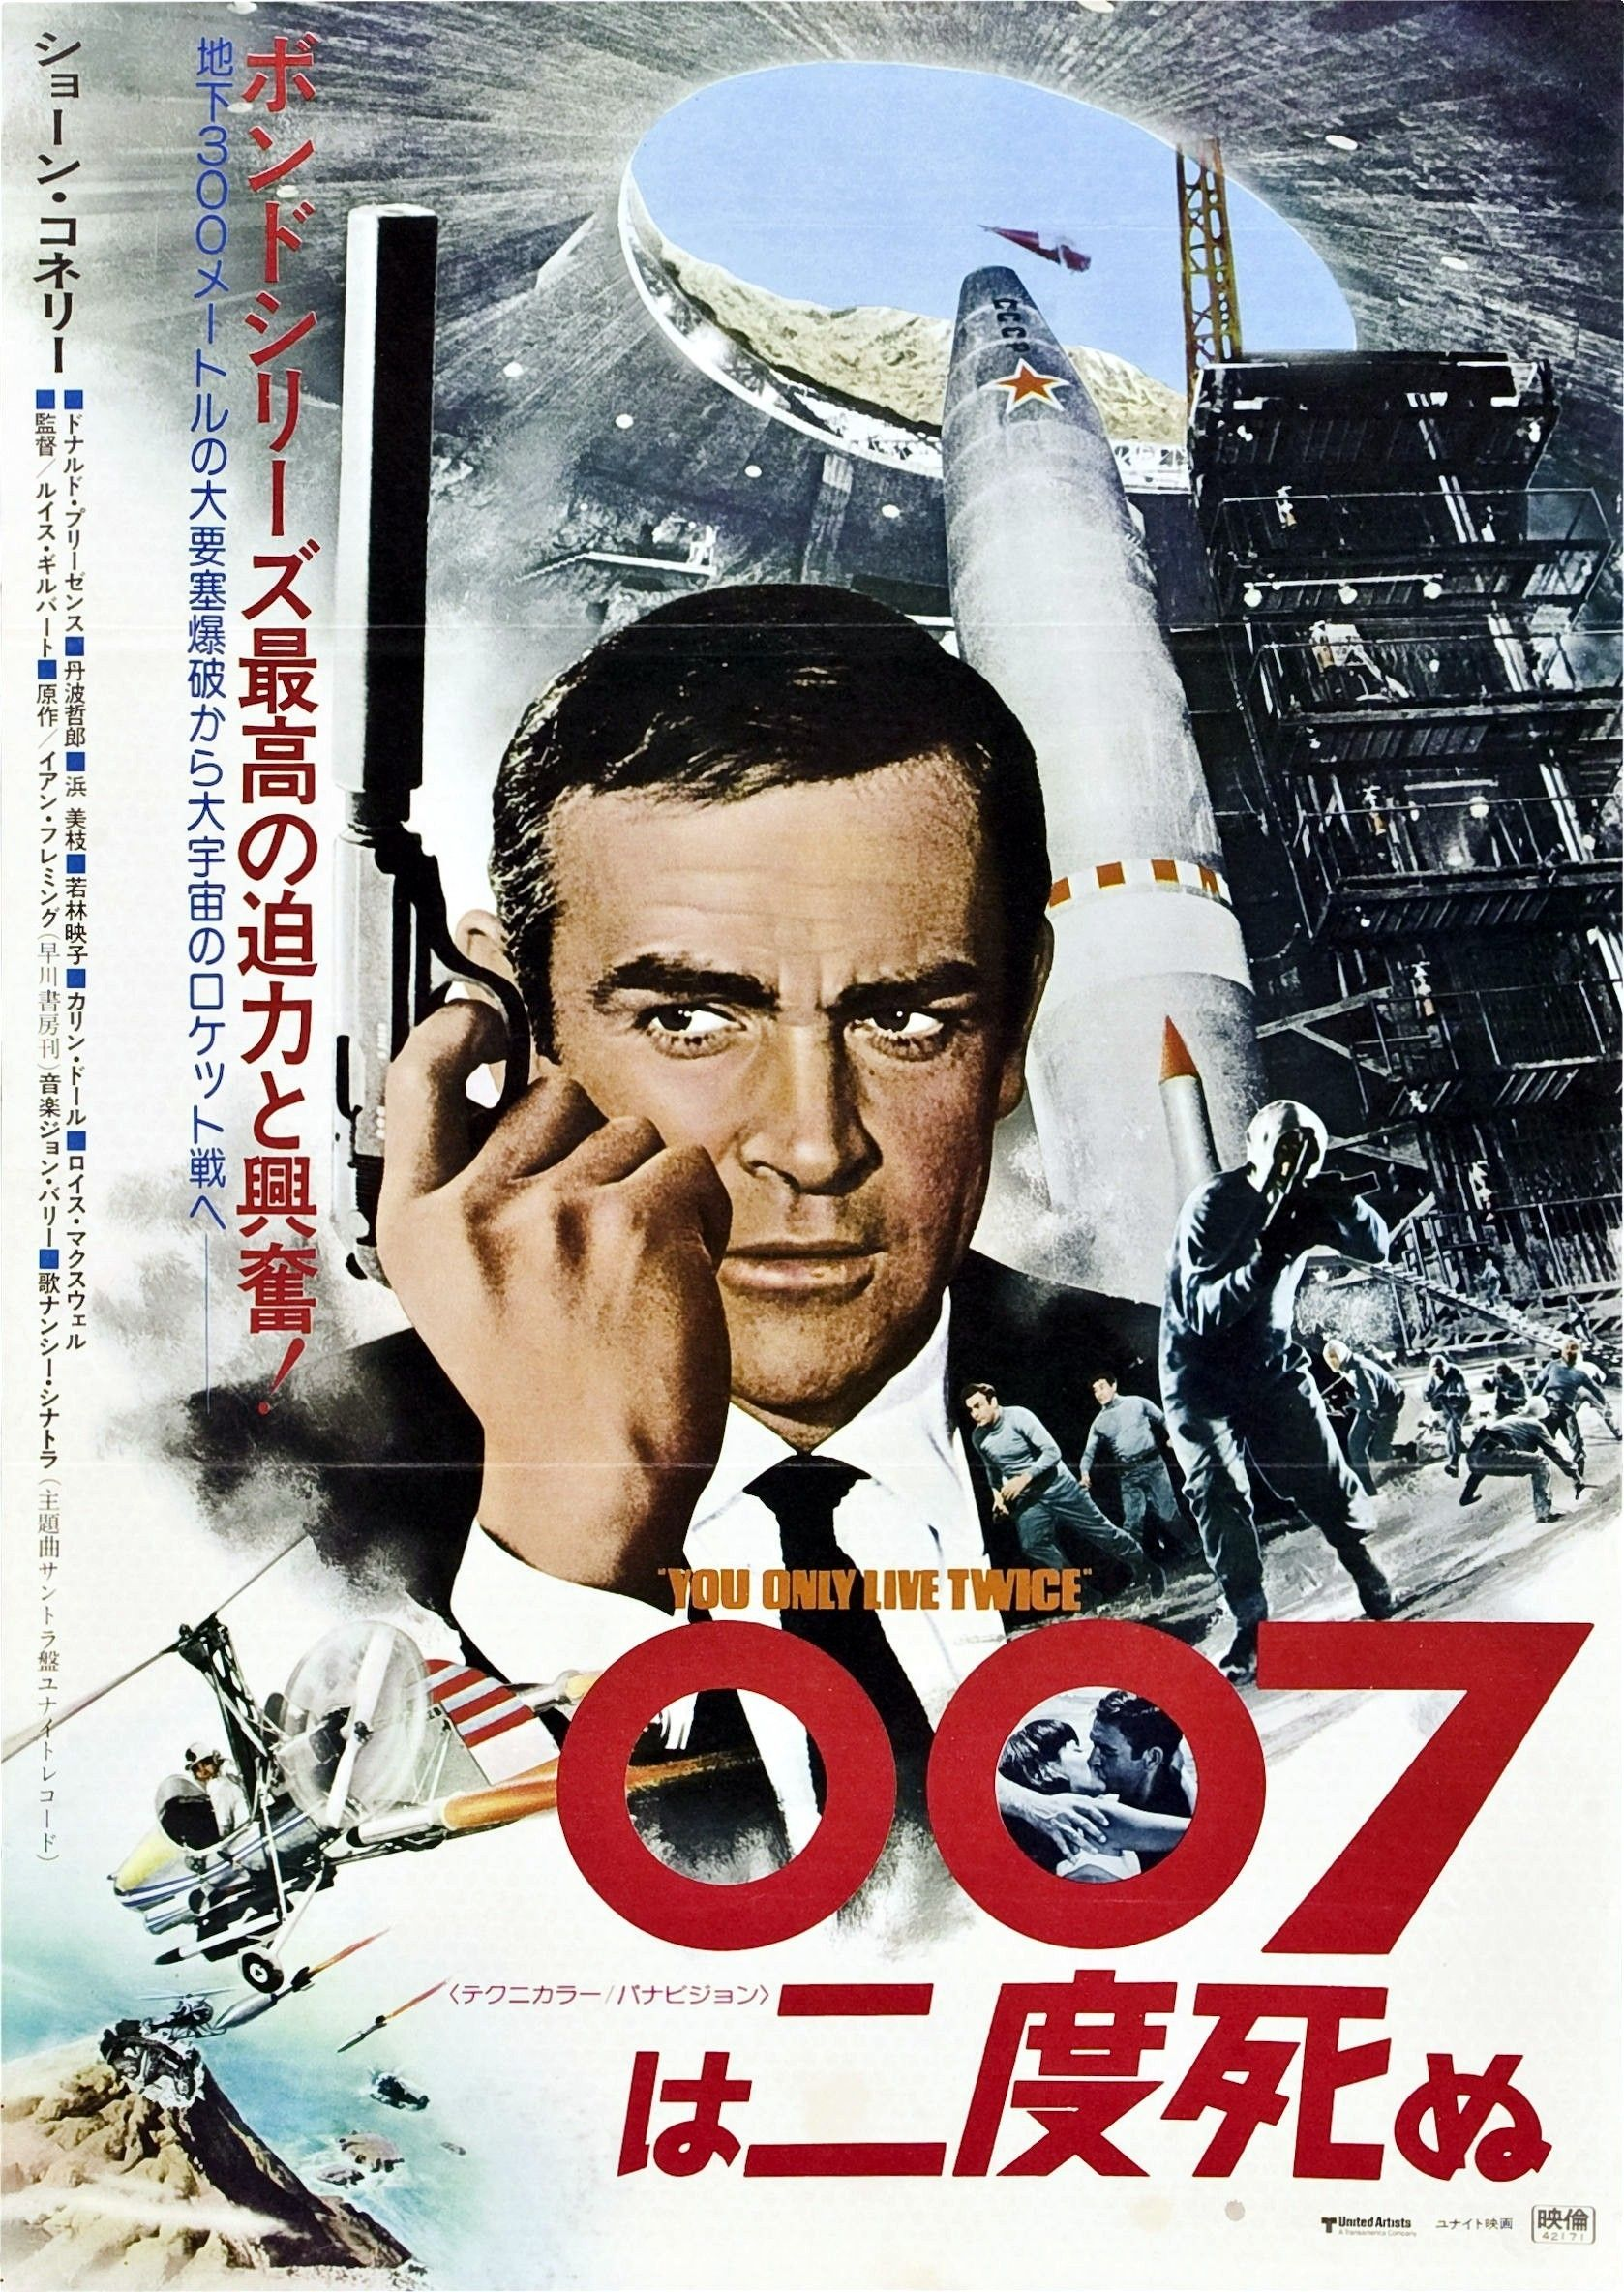 James Bond Movie Posters You Only Live Twice